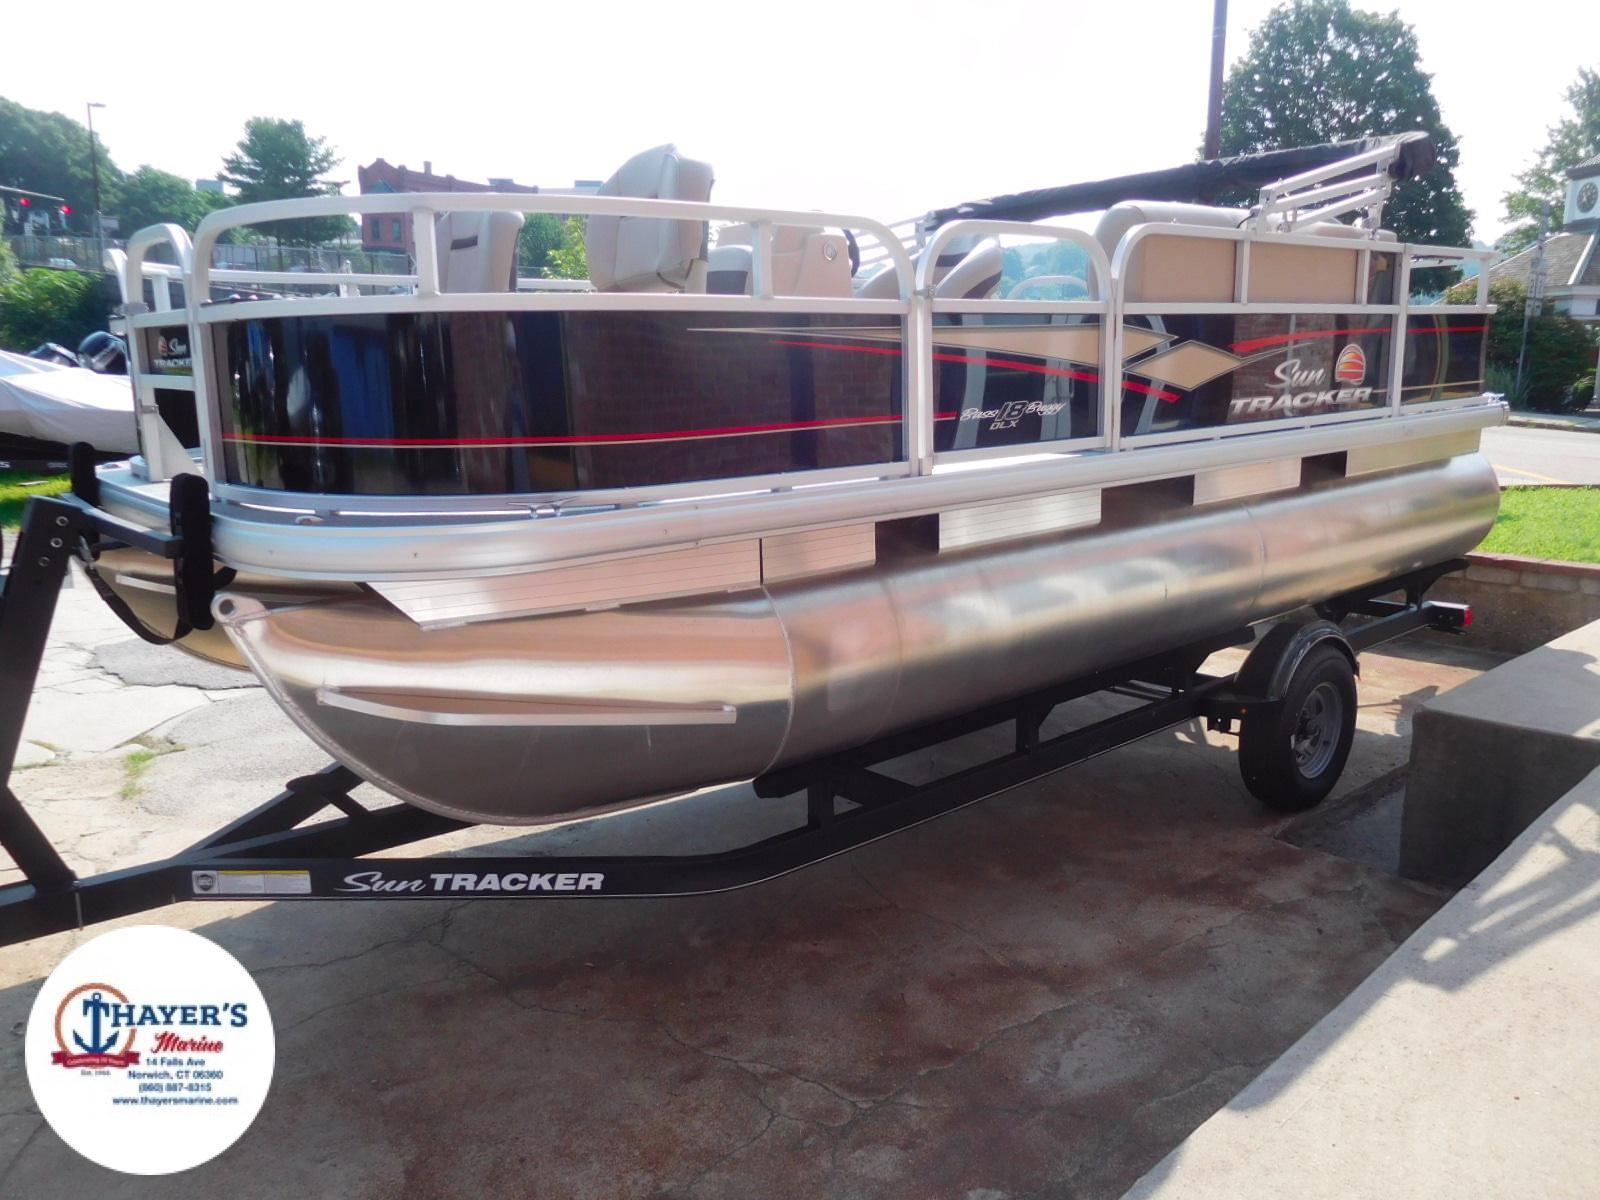 2018 Sun Tracker boat for sale, model of the boat is Bass Buggy 18 DLX & Image # 28 of 35